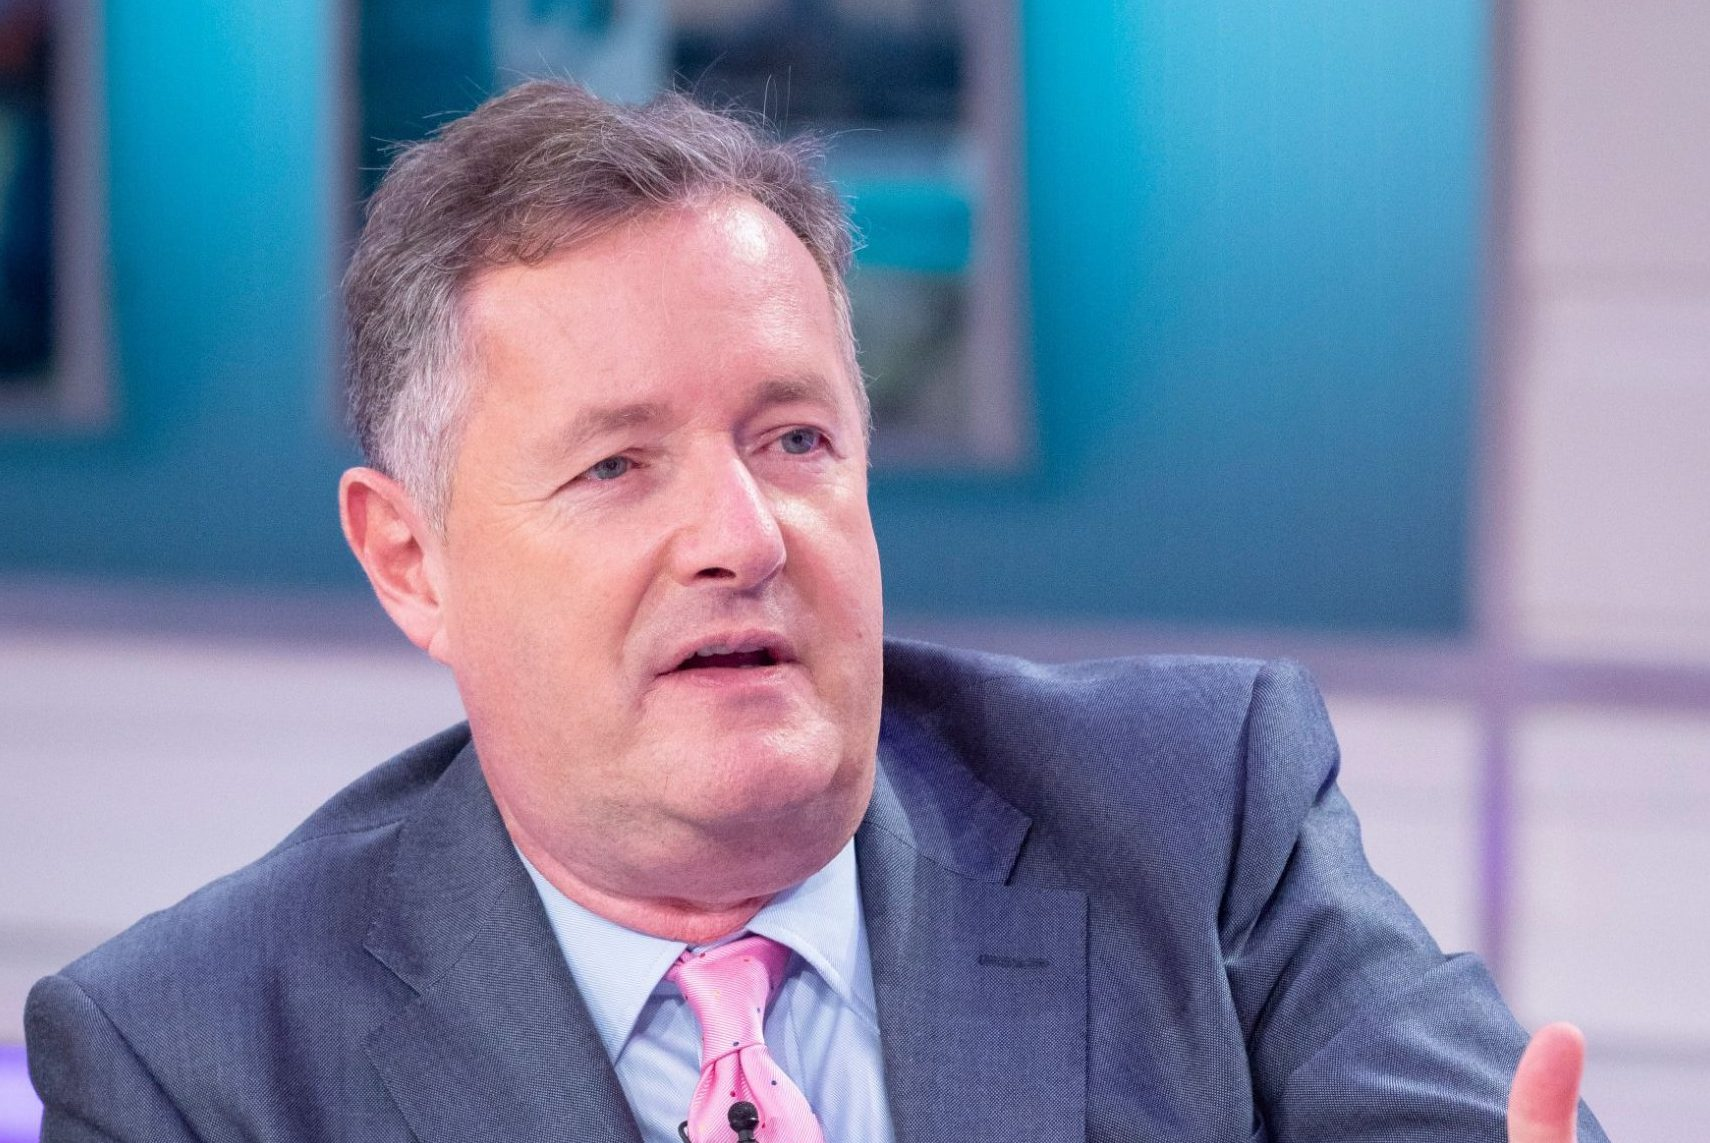 Where is Piers Morgan? Good Morning Britain host is not on today's show